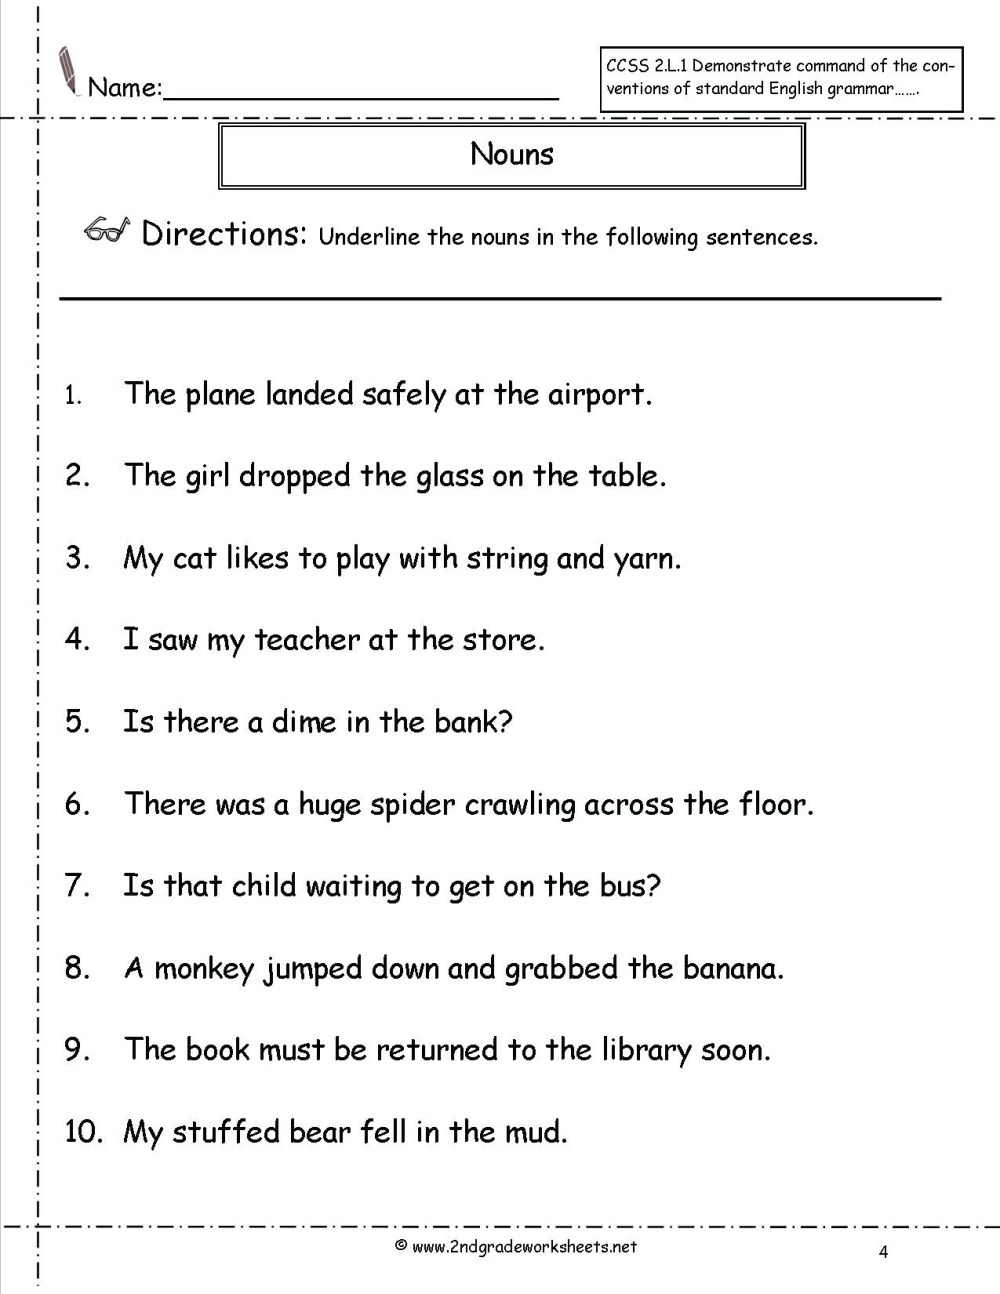 medium resolution of 4th Grade Gender Nouns Worksheet   Printable Worksheets and Activities for  Teachers